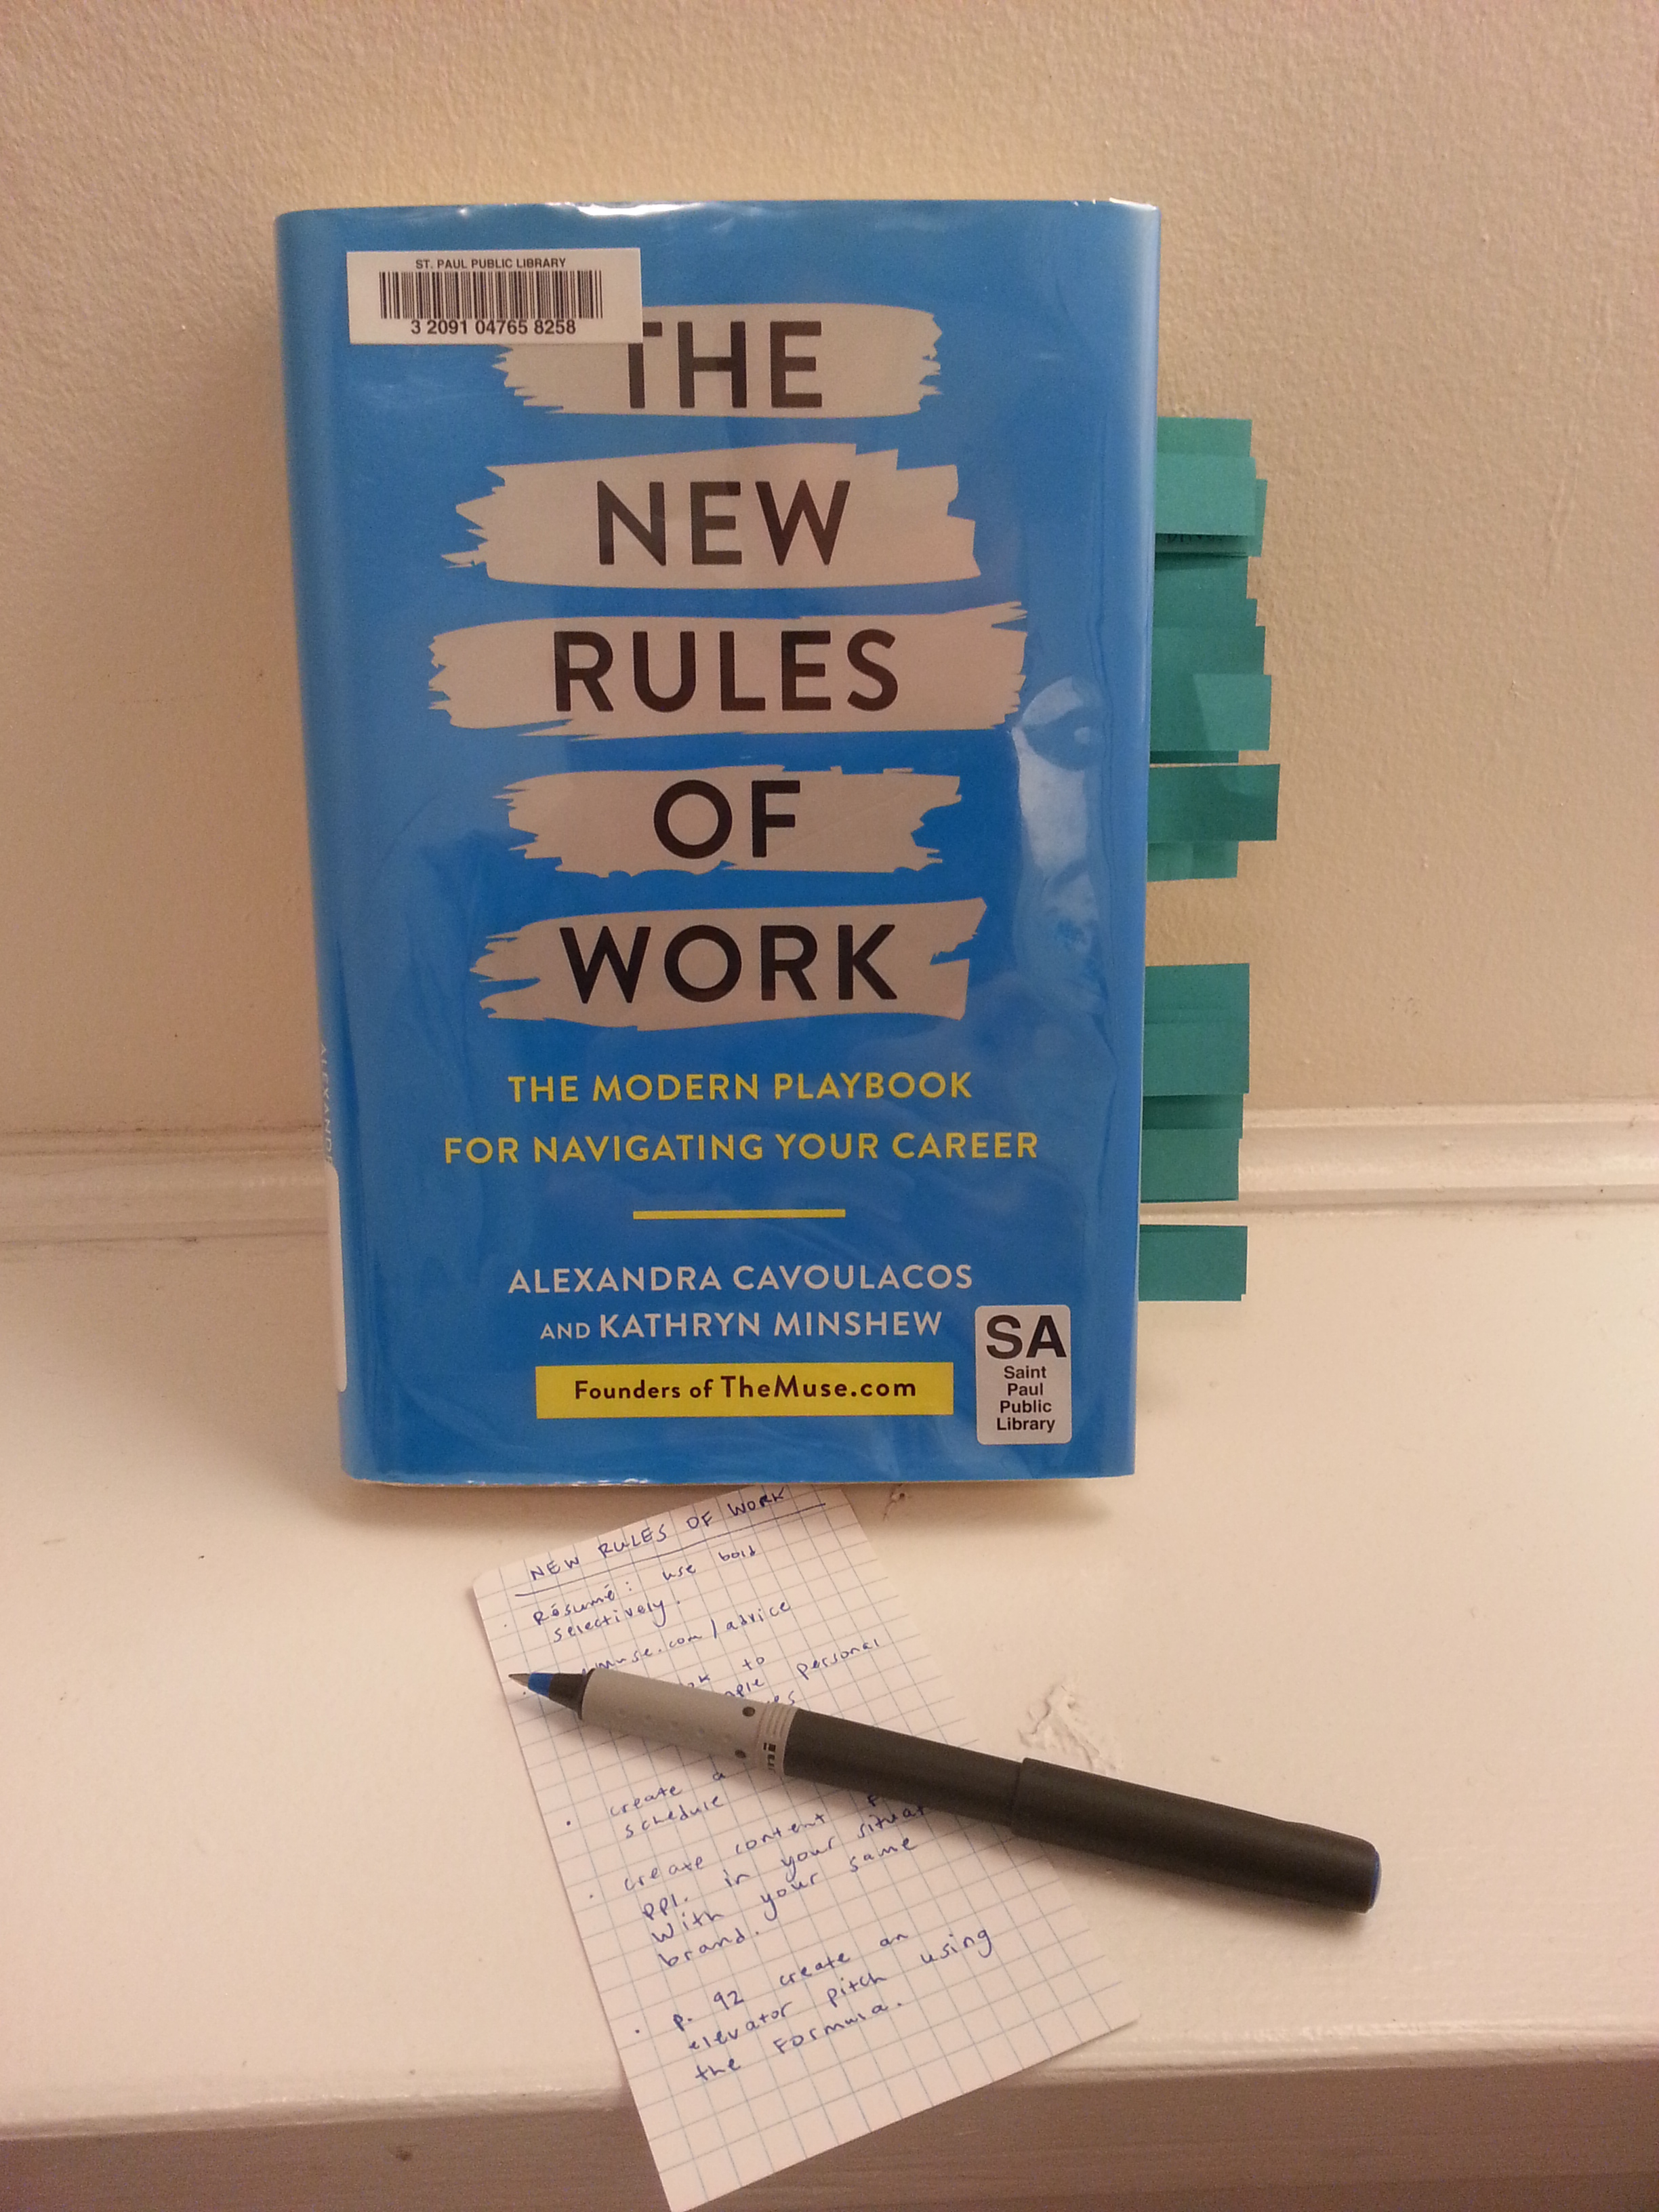 New Rules of Work and notes